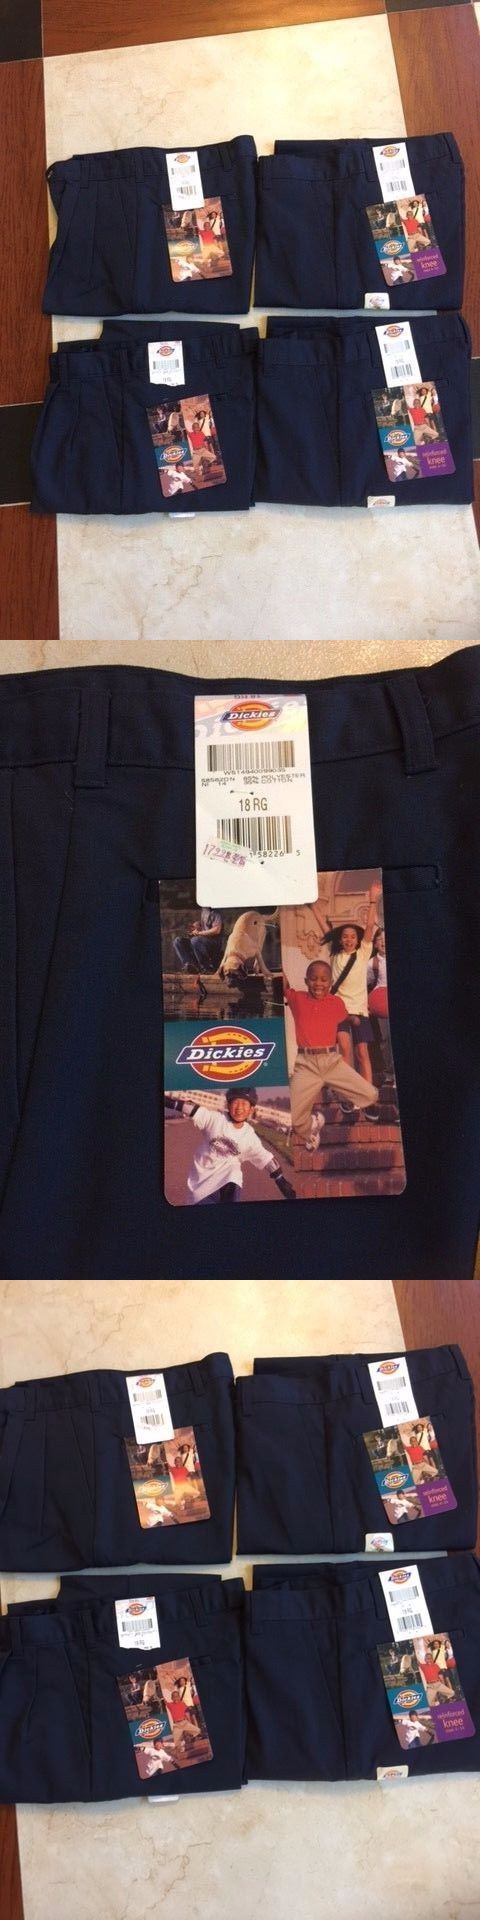 Pants 51920: Lot Of 4 Dickies Pants Boys School Uniform Pants Plain Front Size 18 Rg -> BUY IT NOW ONLY: $32 on eBay!